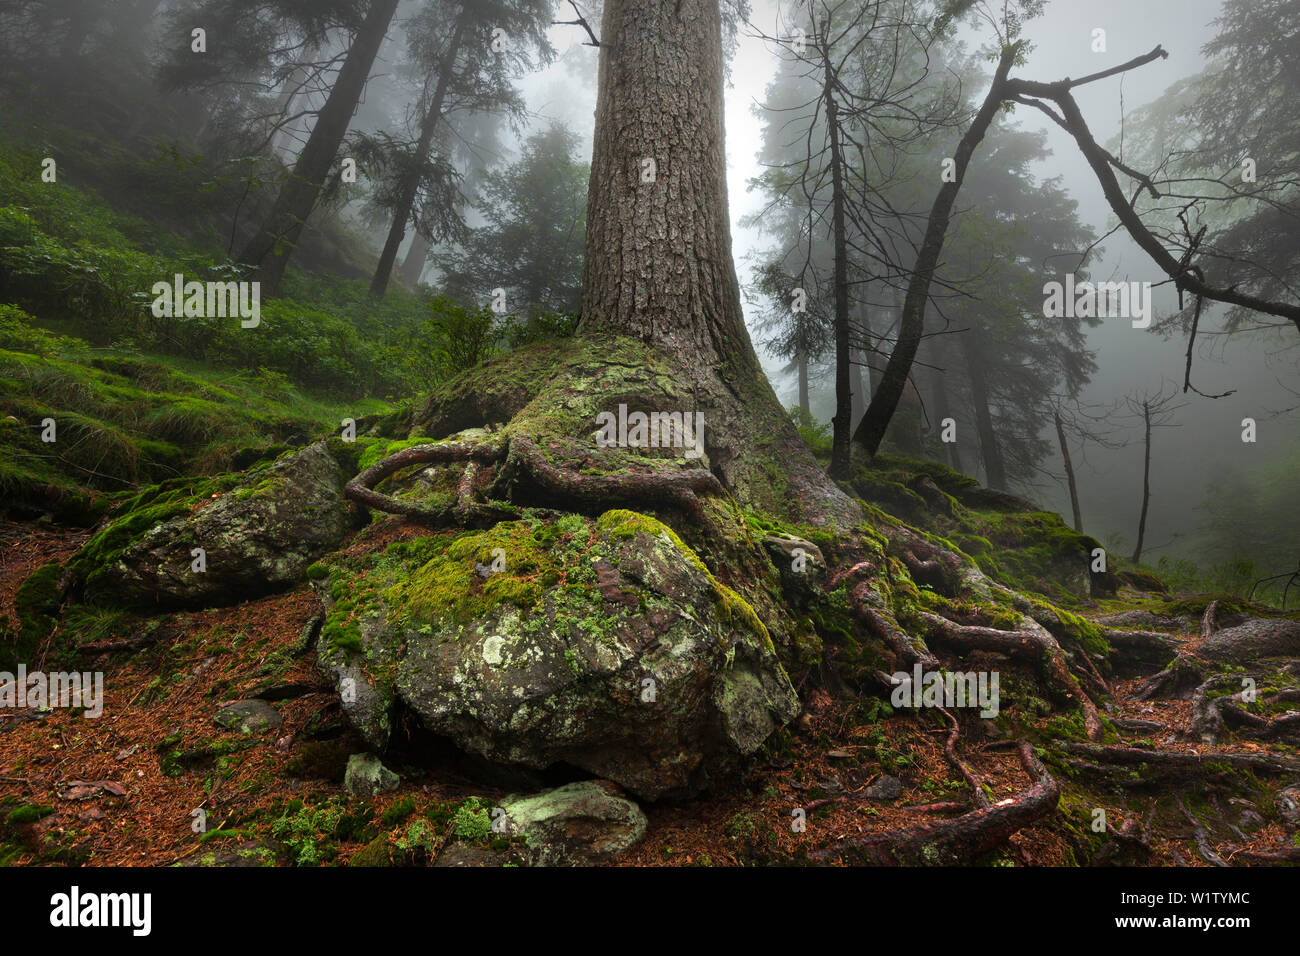 Roots of a spruce, hiking path to Grosser Falkenstein, Bavarian Forest, Bavaria, Germany Stock Photo